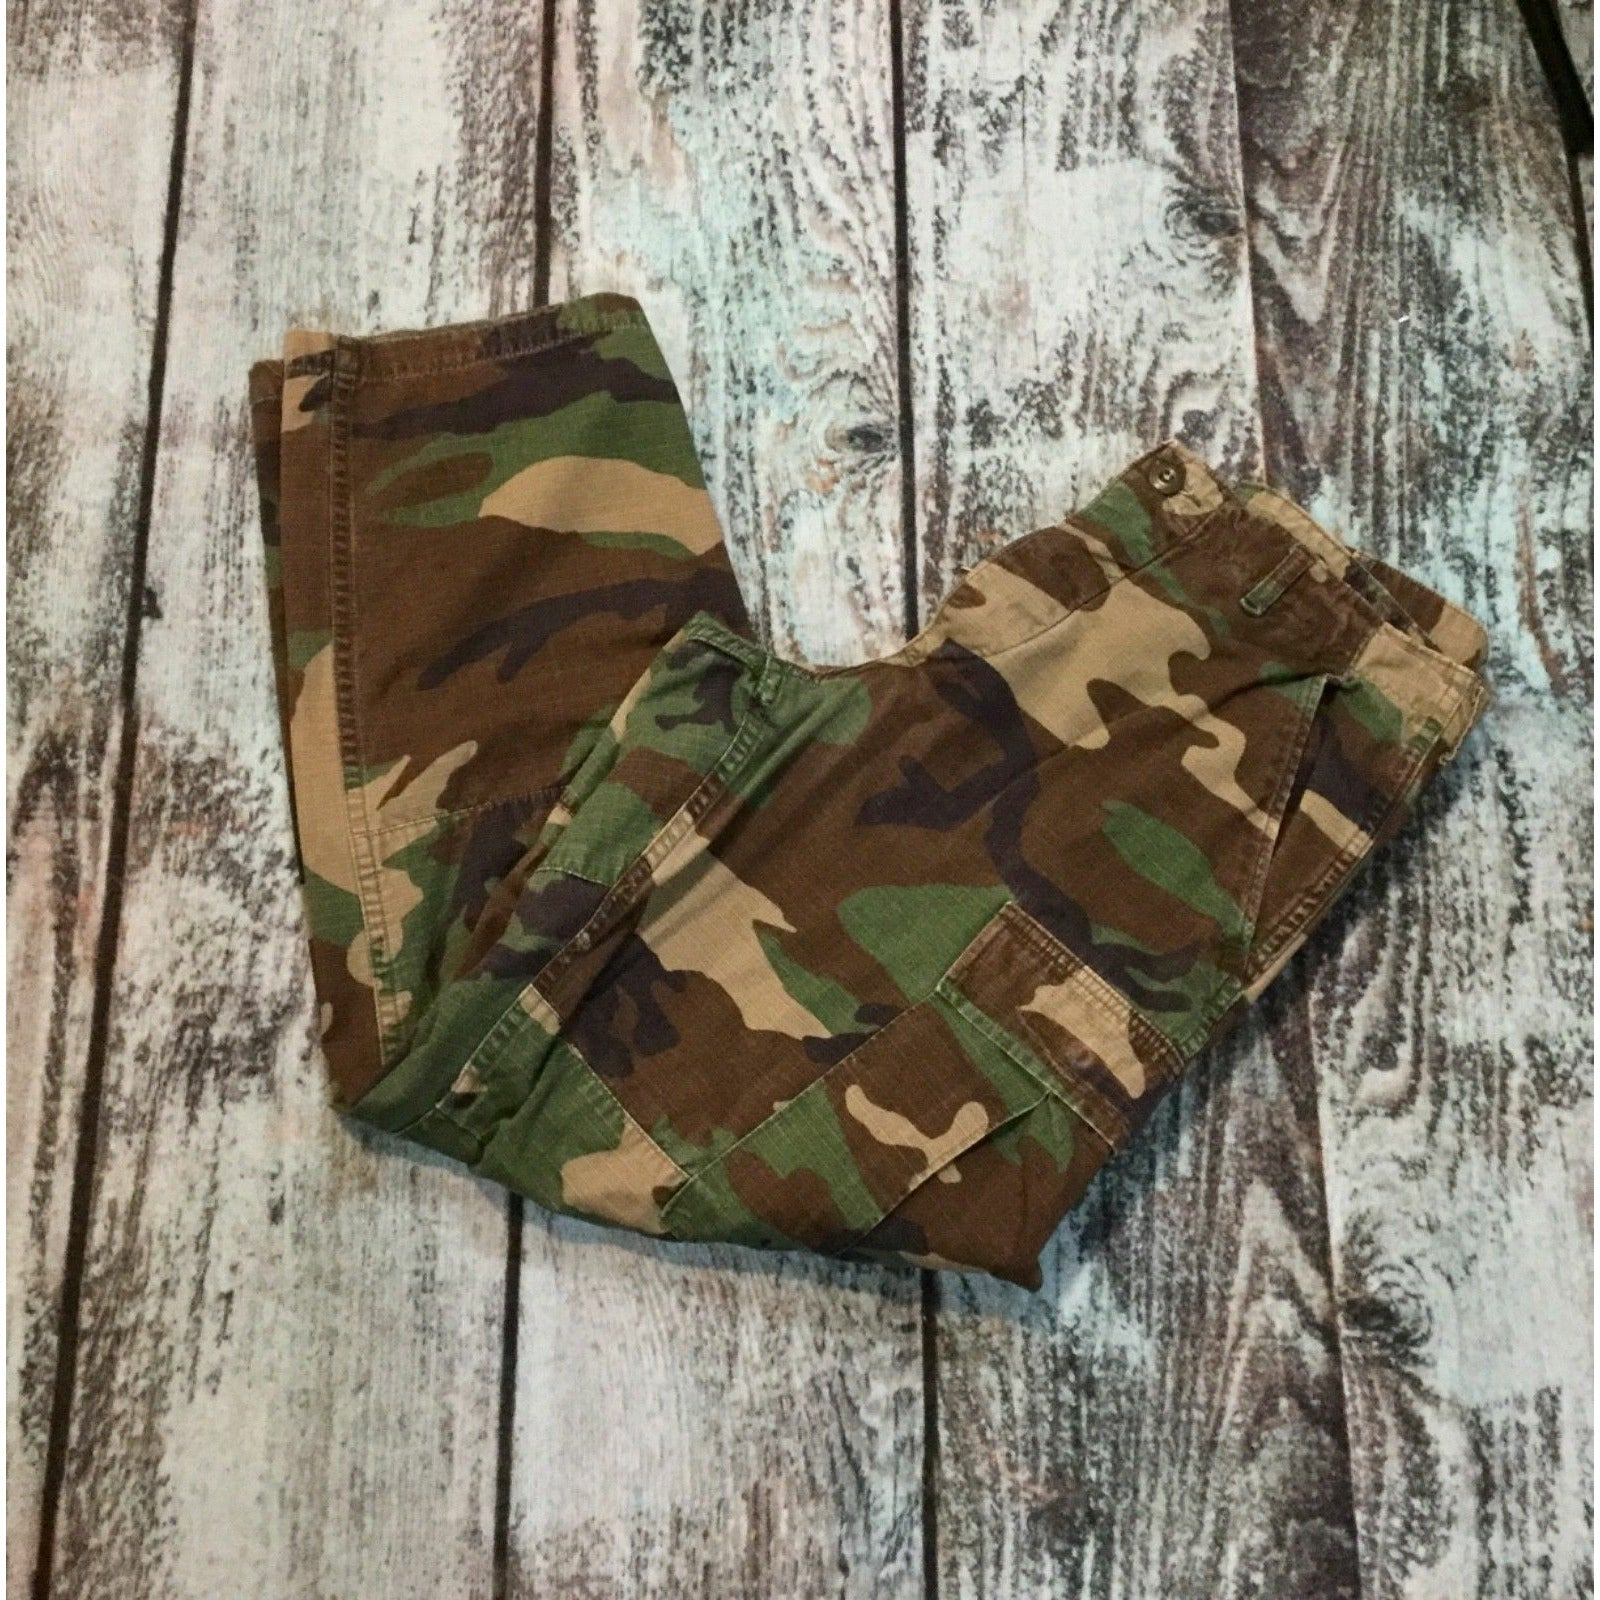 US Military Army Camouflage, Camo Pants, Size Small Short